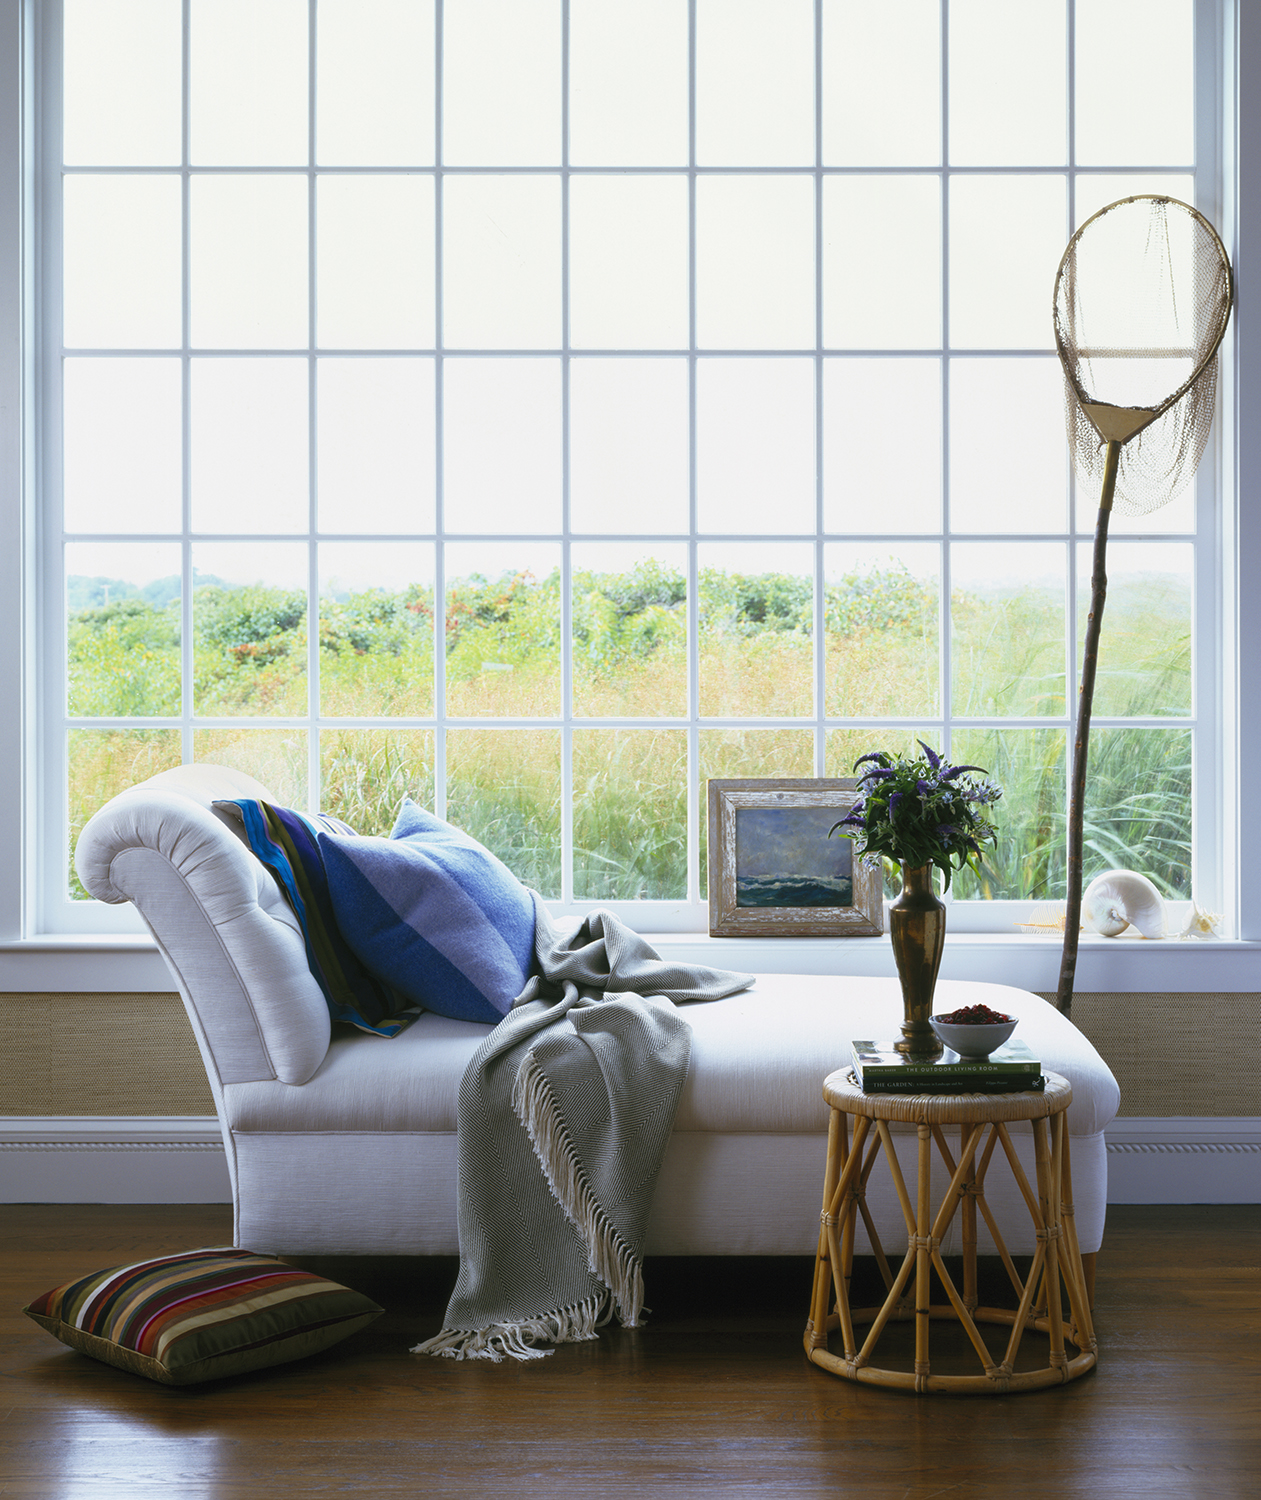 Chaise in front of huge window